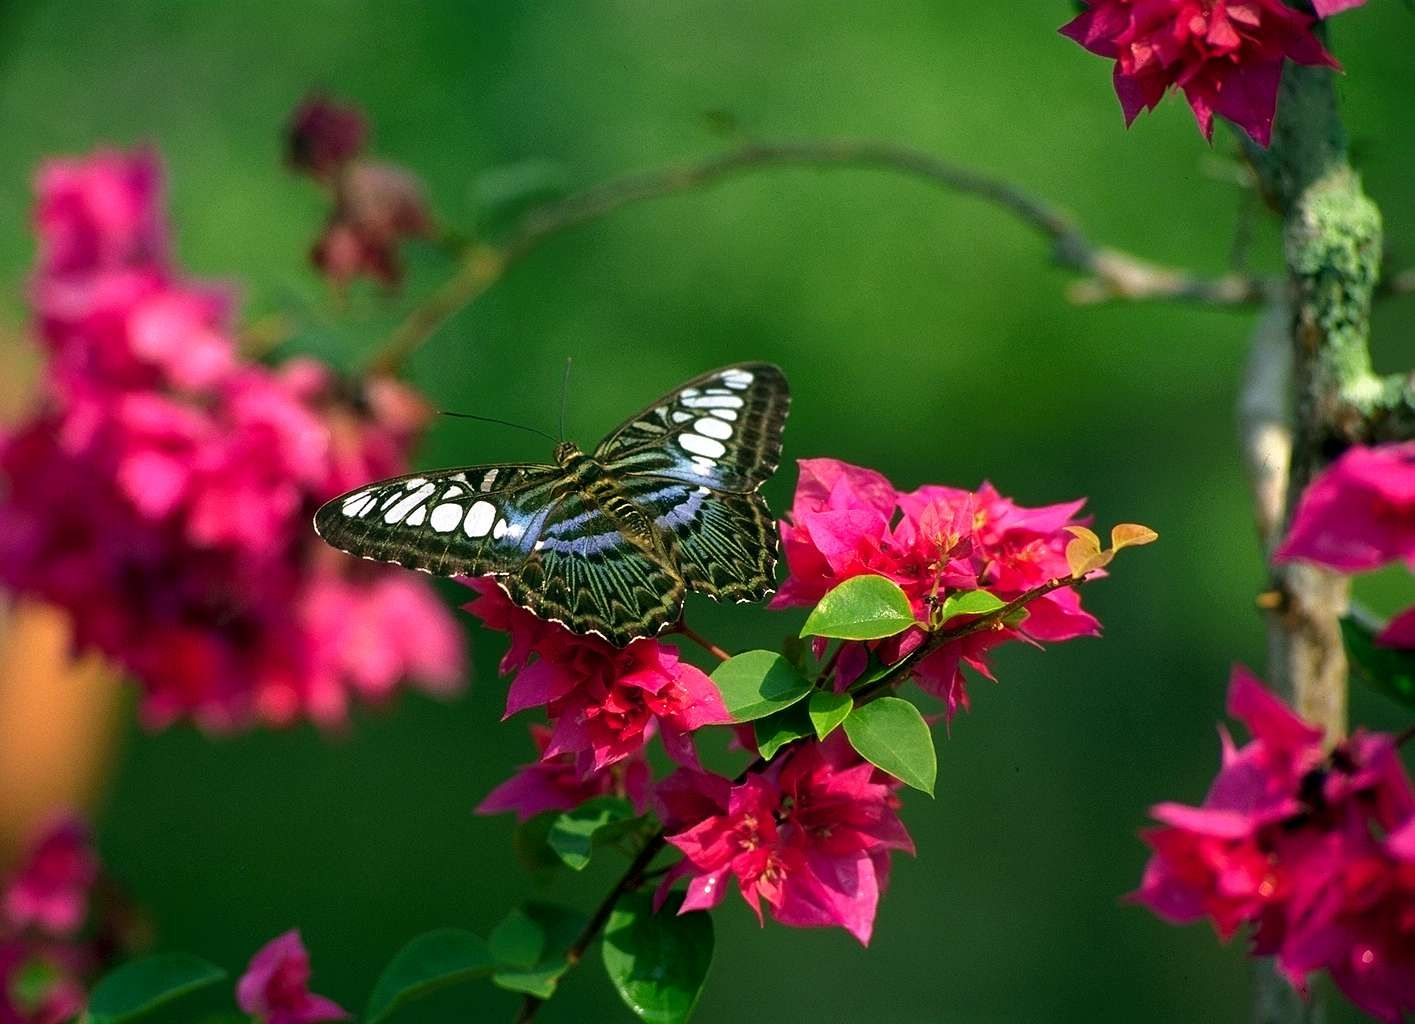 Flowers Butterfly Natural Beauty Desktop Wallpapers Beautiful Butterflies Beautiful Flowers Wallpapers Nature Wallpaper